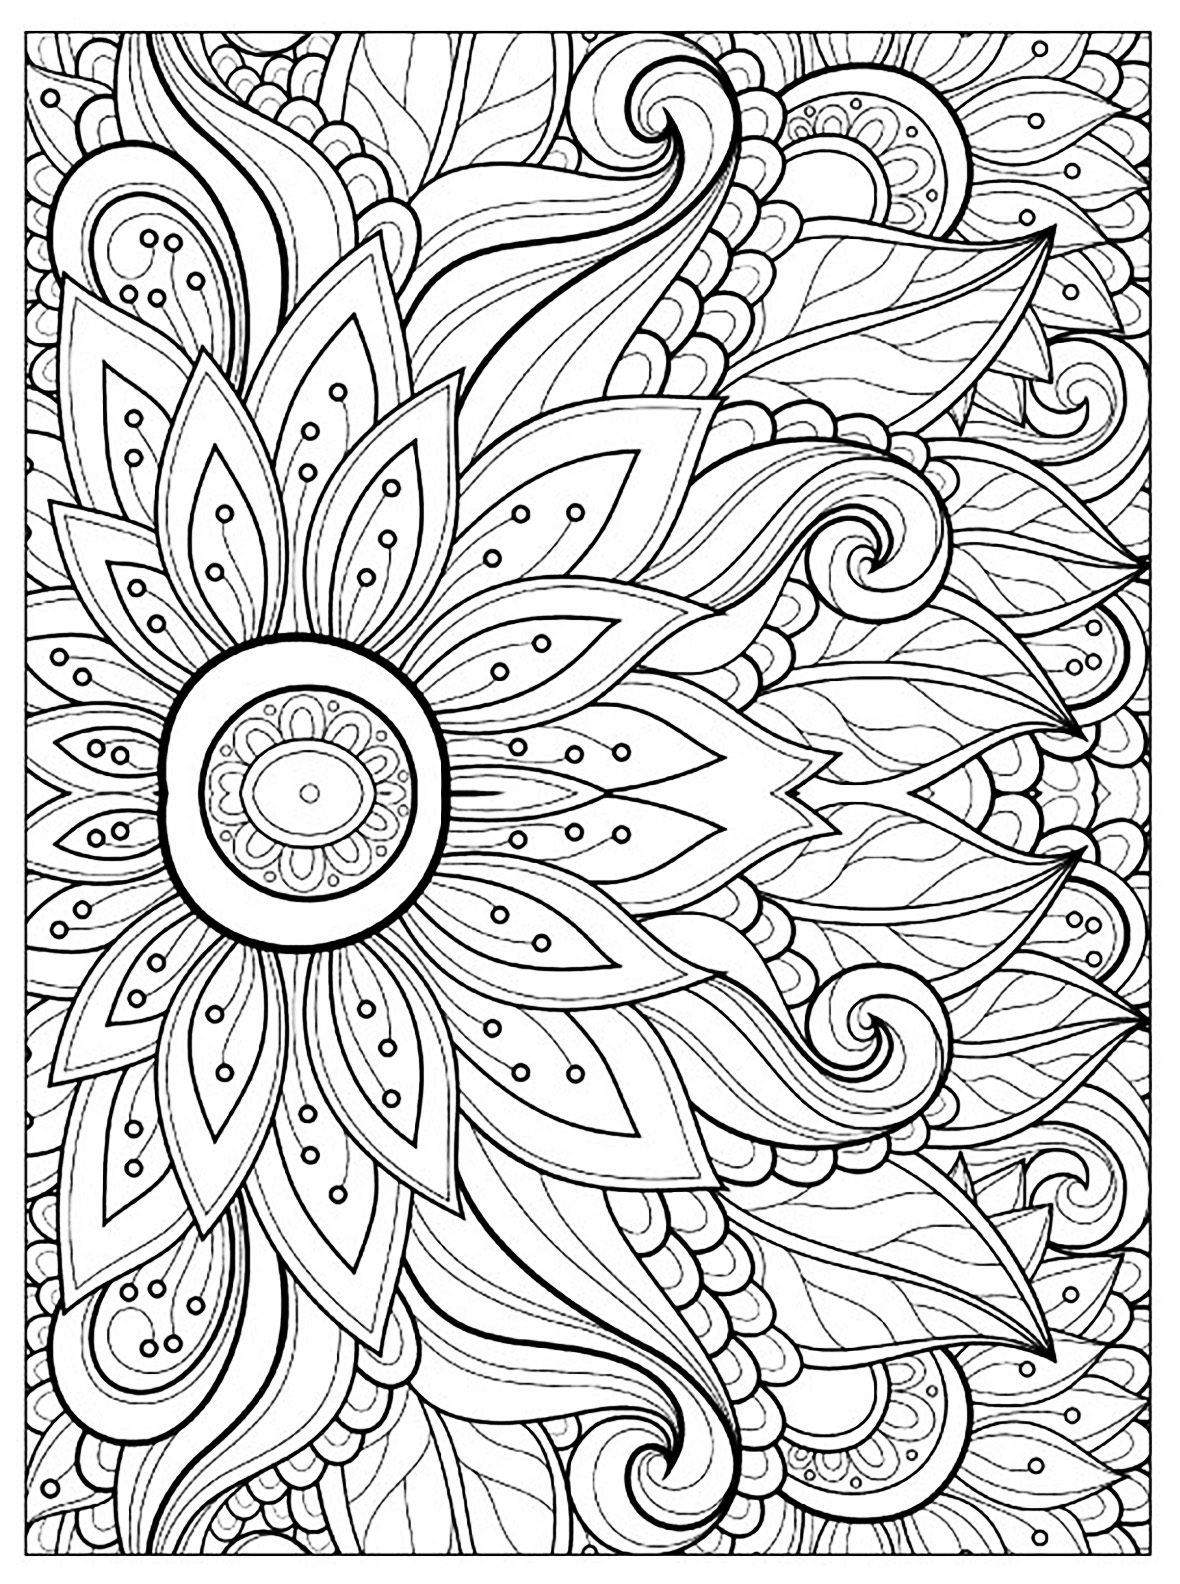 colouring page of flowers free printable beautiful flowers coloring page for kids colouring flowers page of